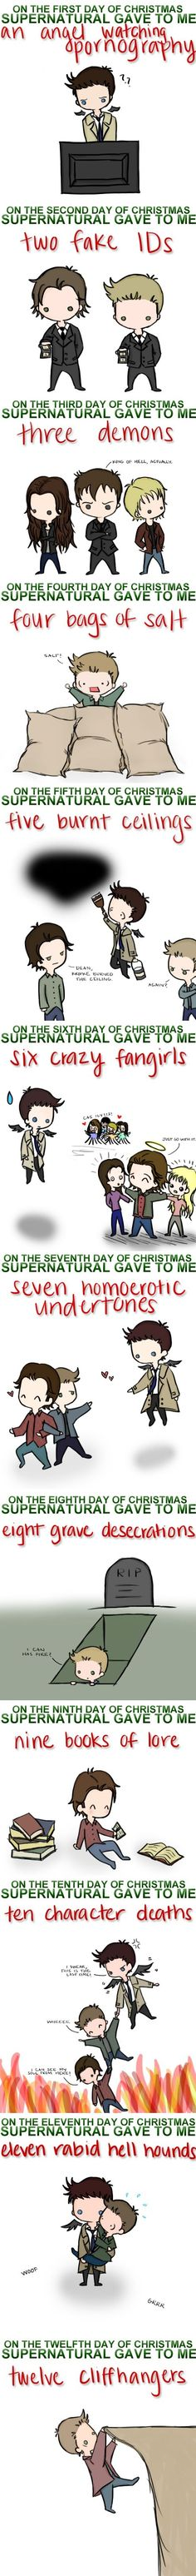 """Twelve Days of Supernatural Christmas. I love the drawings that go with it. Especially the 10 character deaths one! Lol """"I can see my soul from here!"""":"""